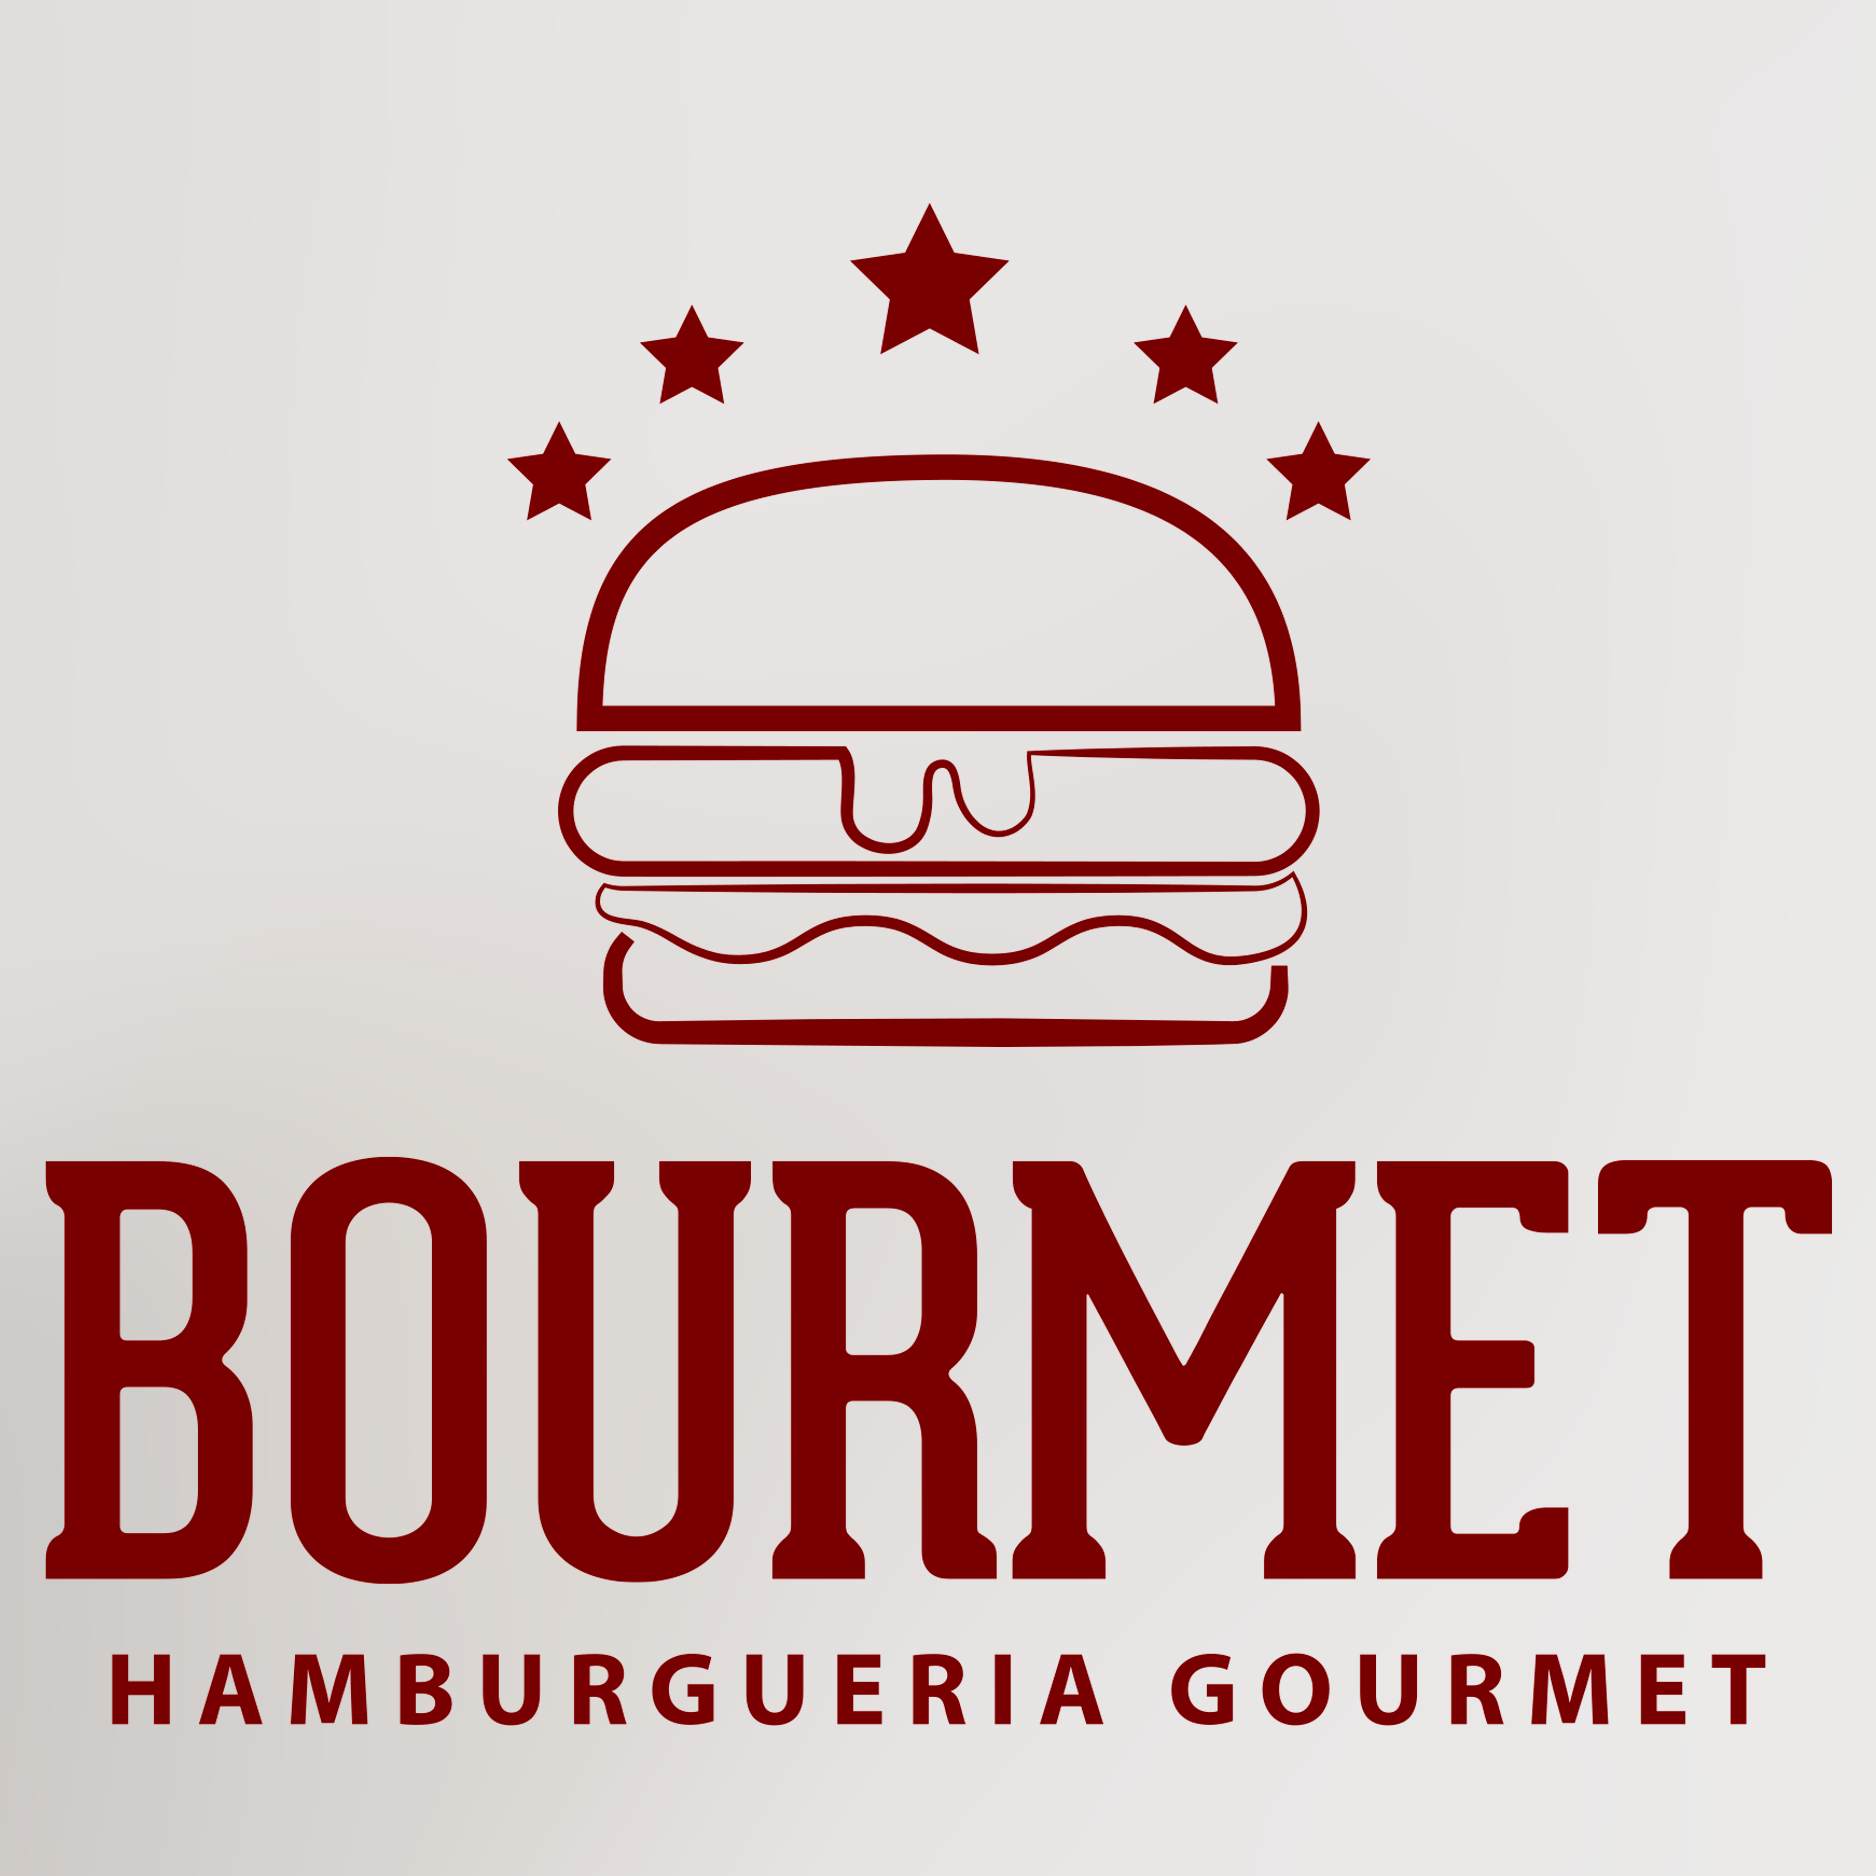 Delivery Bourmet